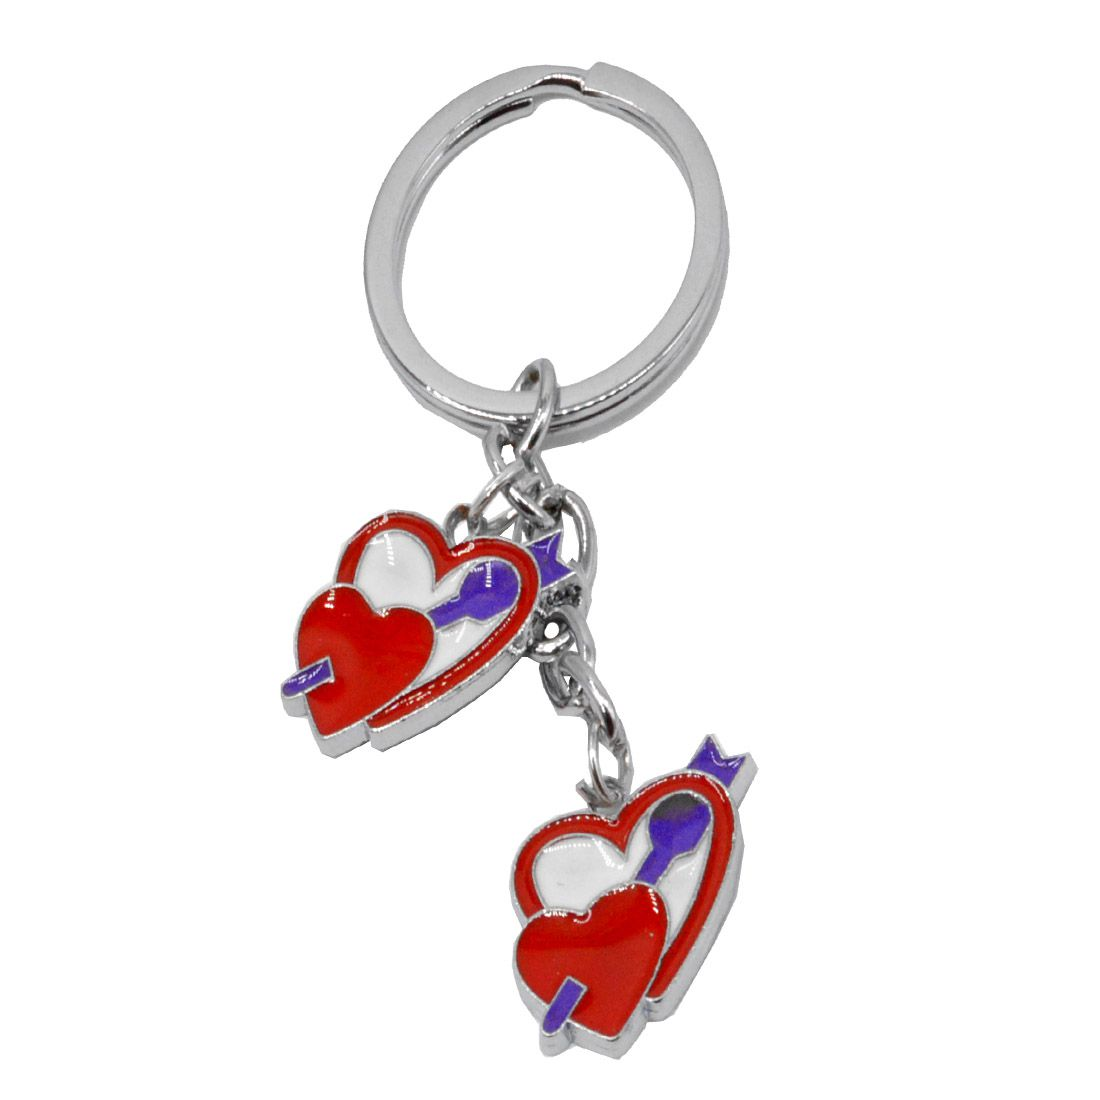 Faynci Unique Red & Silver Heart Shape Keychain for Birthday Gift, Friendship Gift